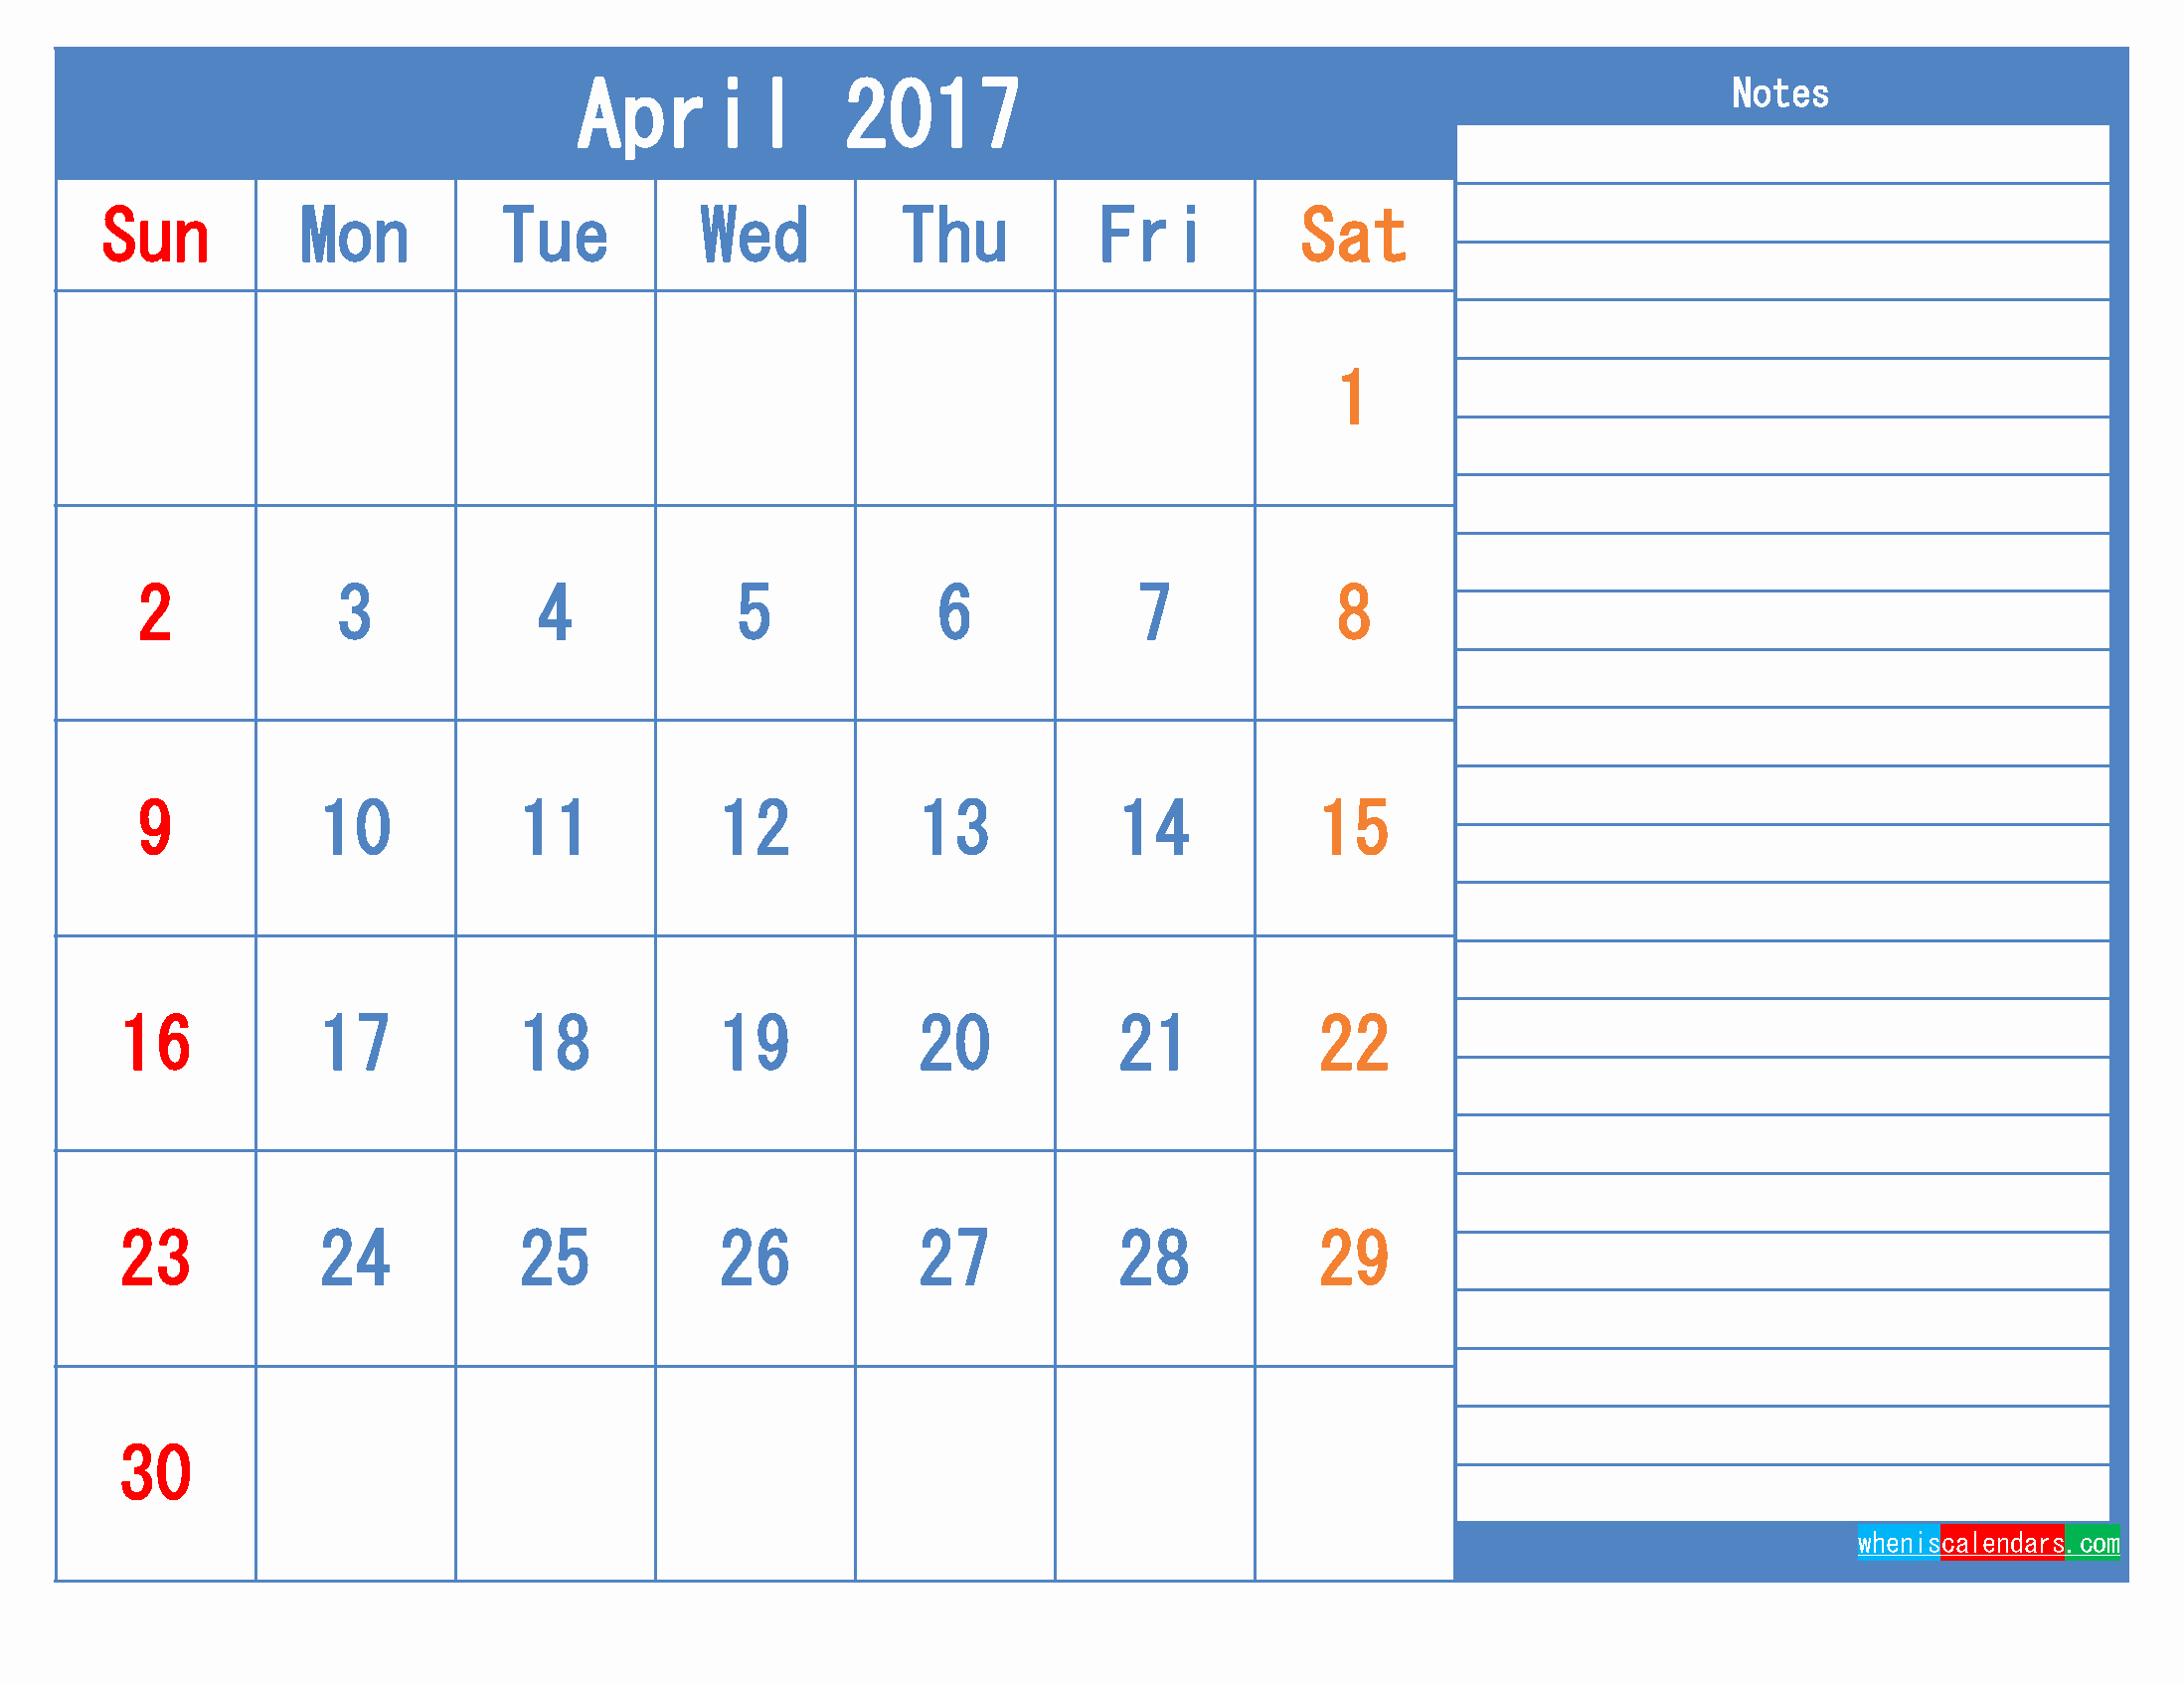 2017 Calendar Template with Notes Best Of Printable Calendar 2017 Monthly Calendar Template